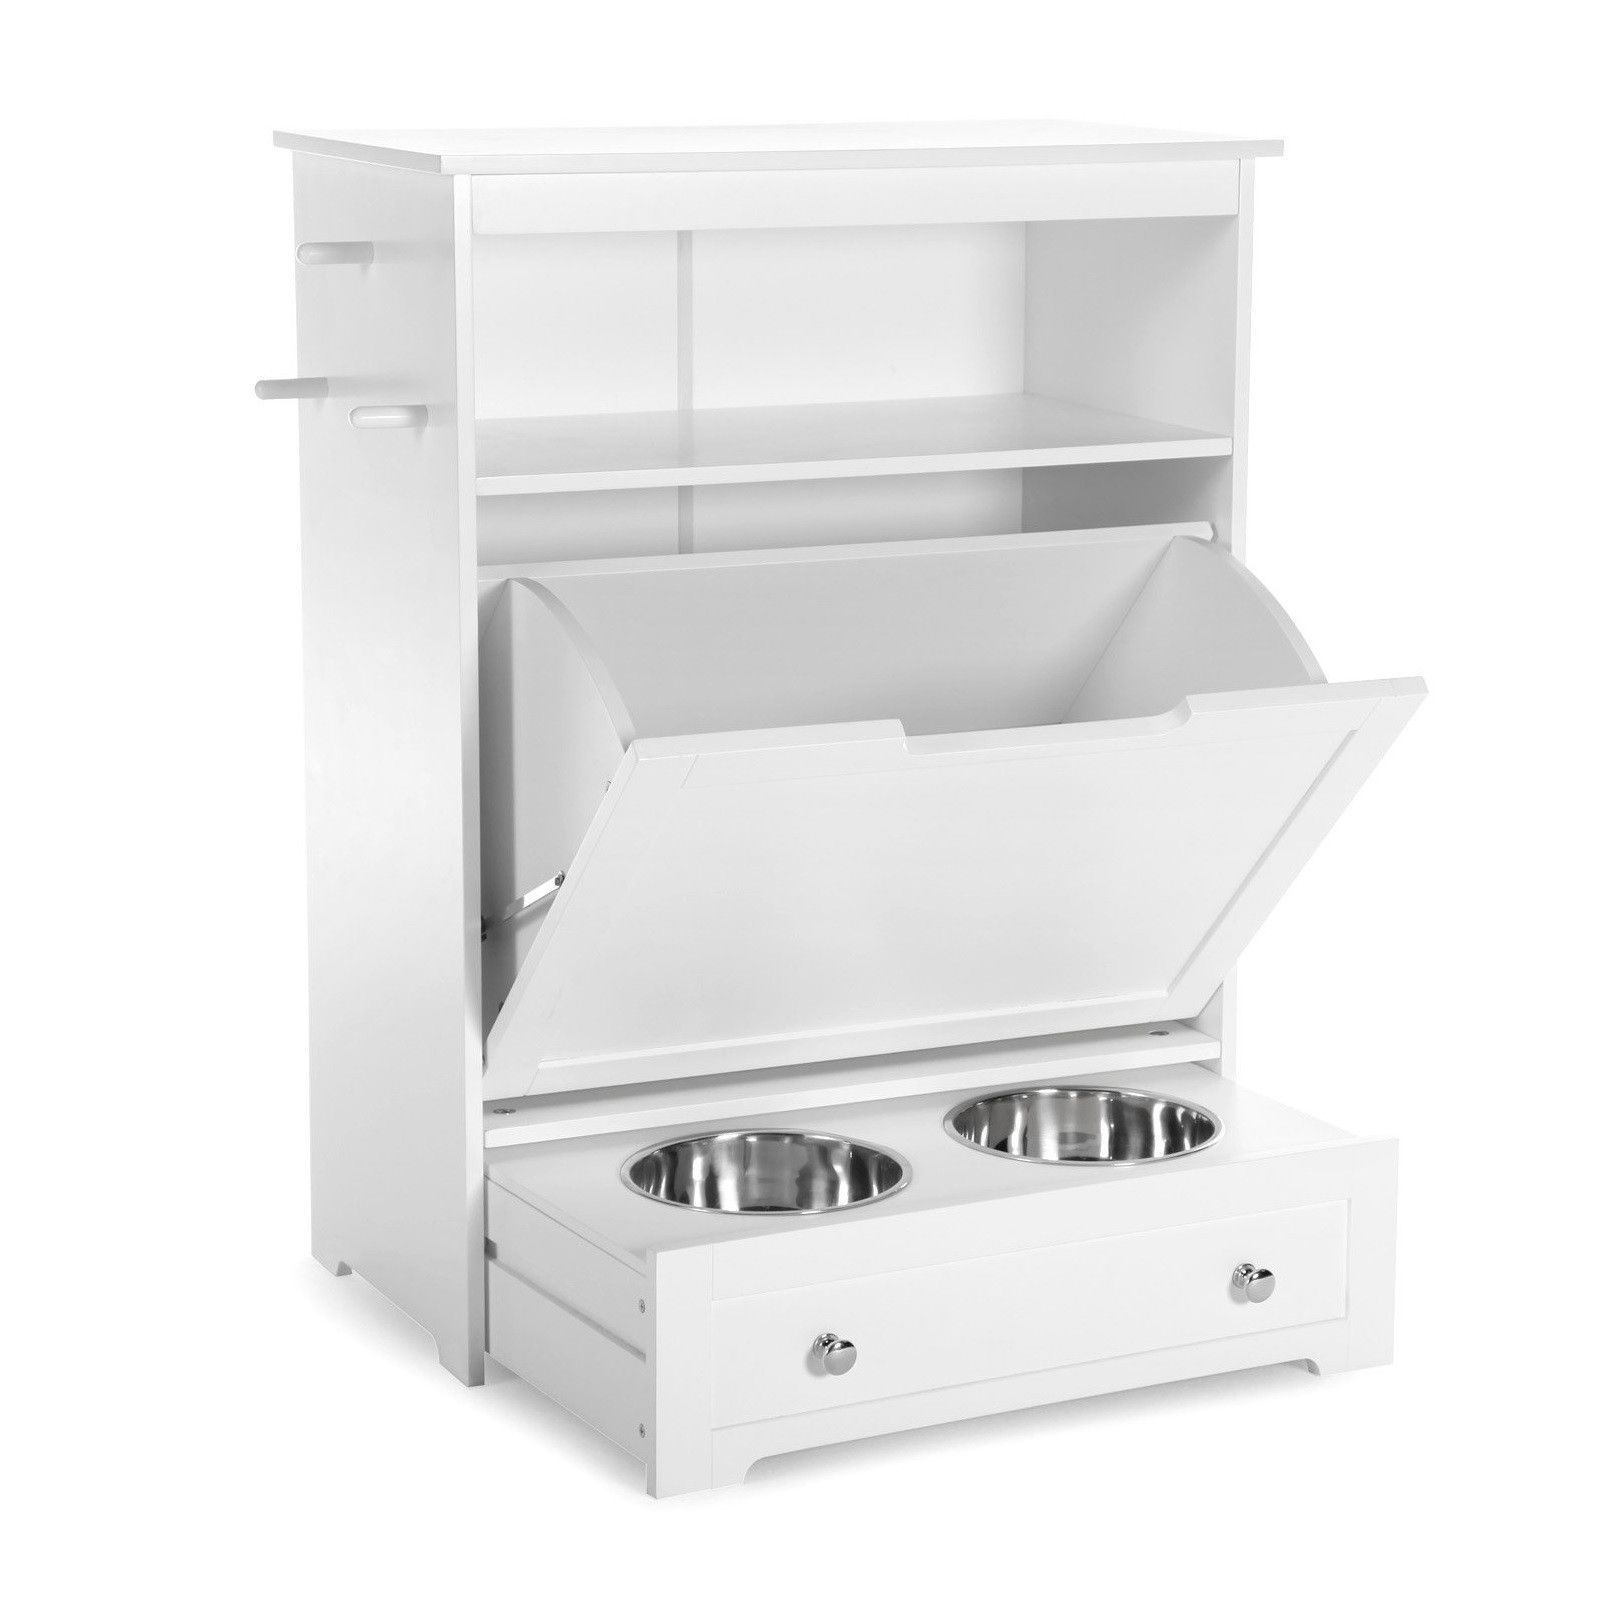 Pet Feeder Station Storage Cabinet | Storage cabinets, Storage and ...